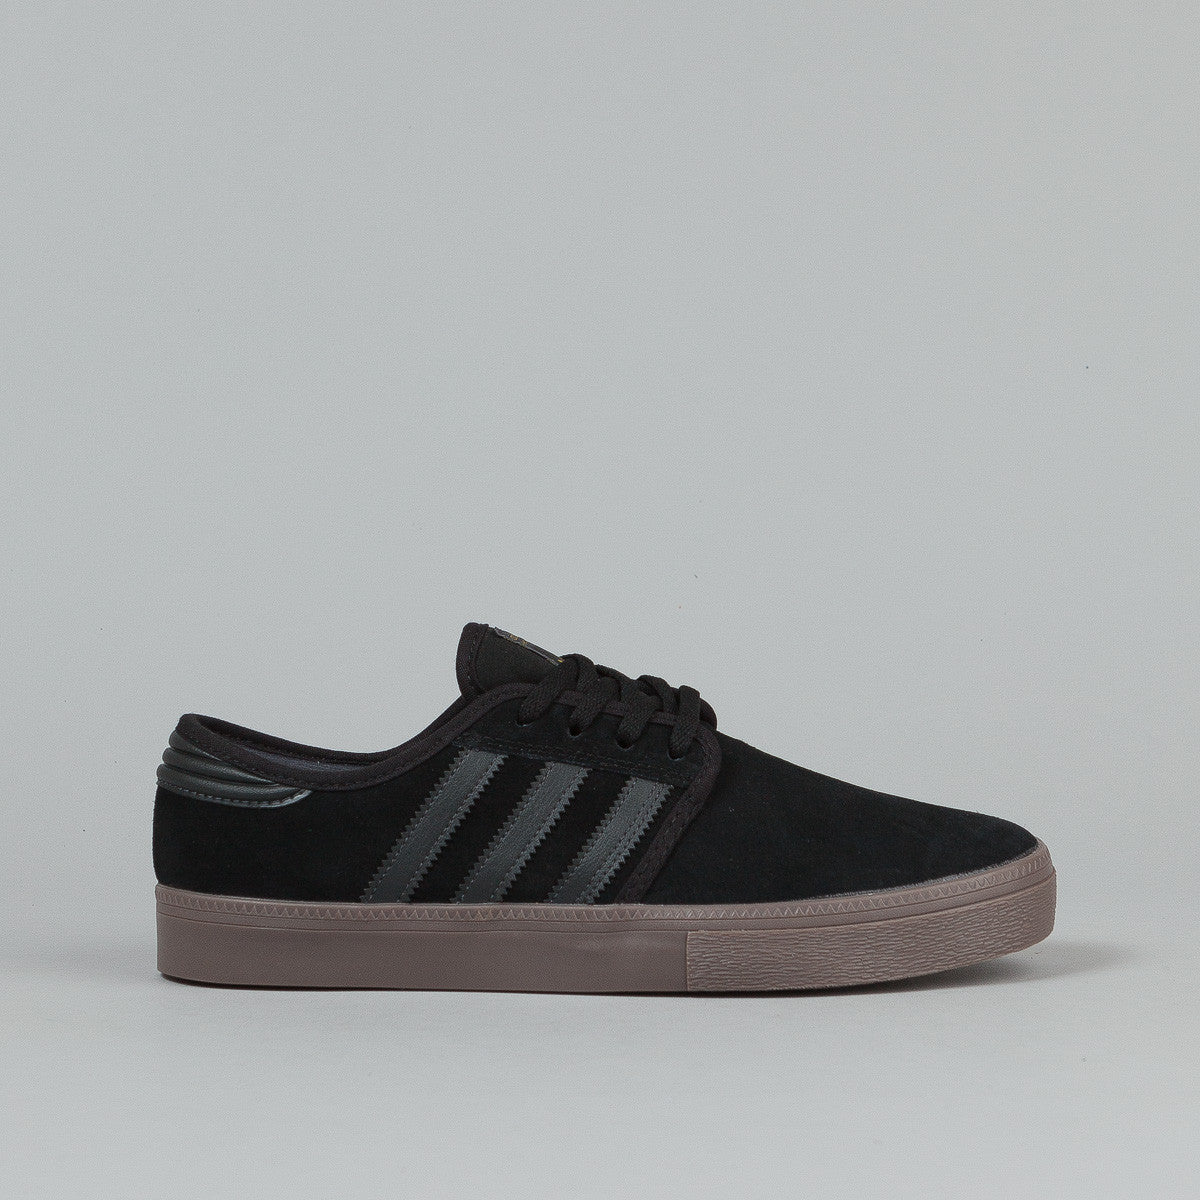 Adidas Seeley ADV Shoes